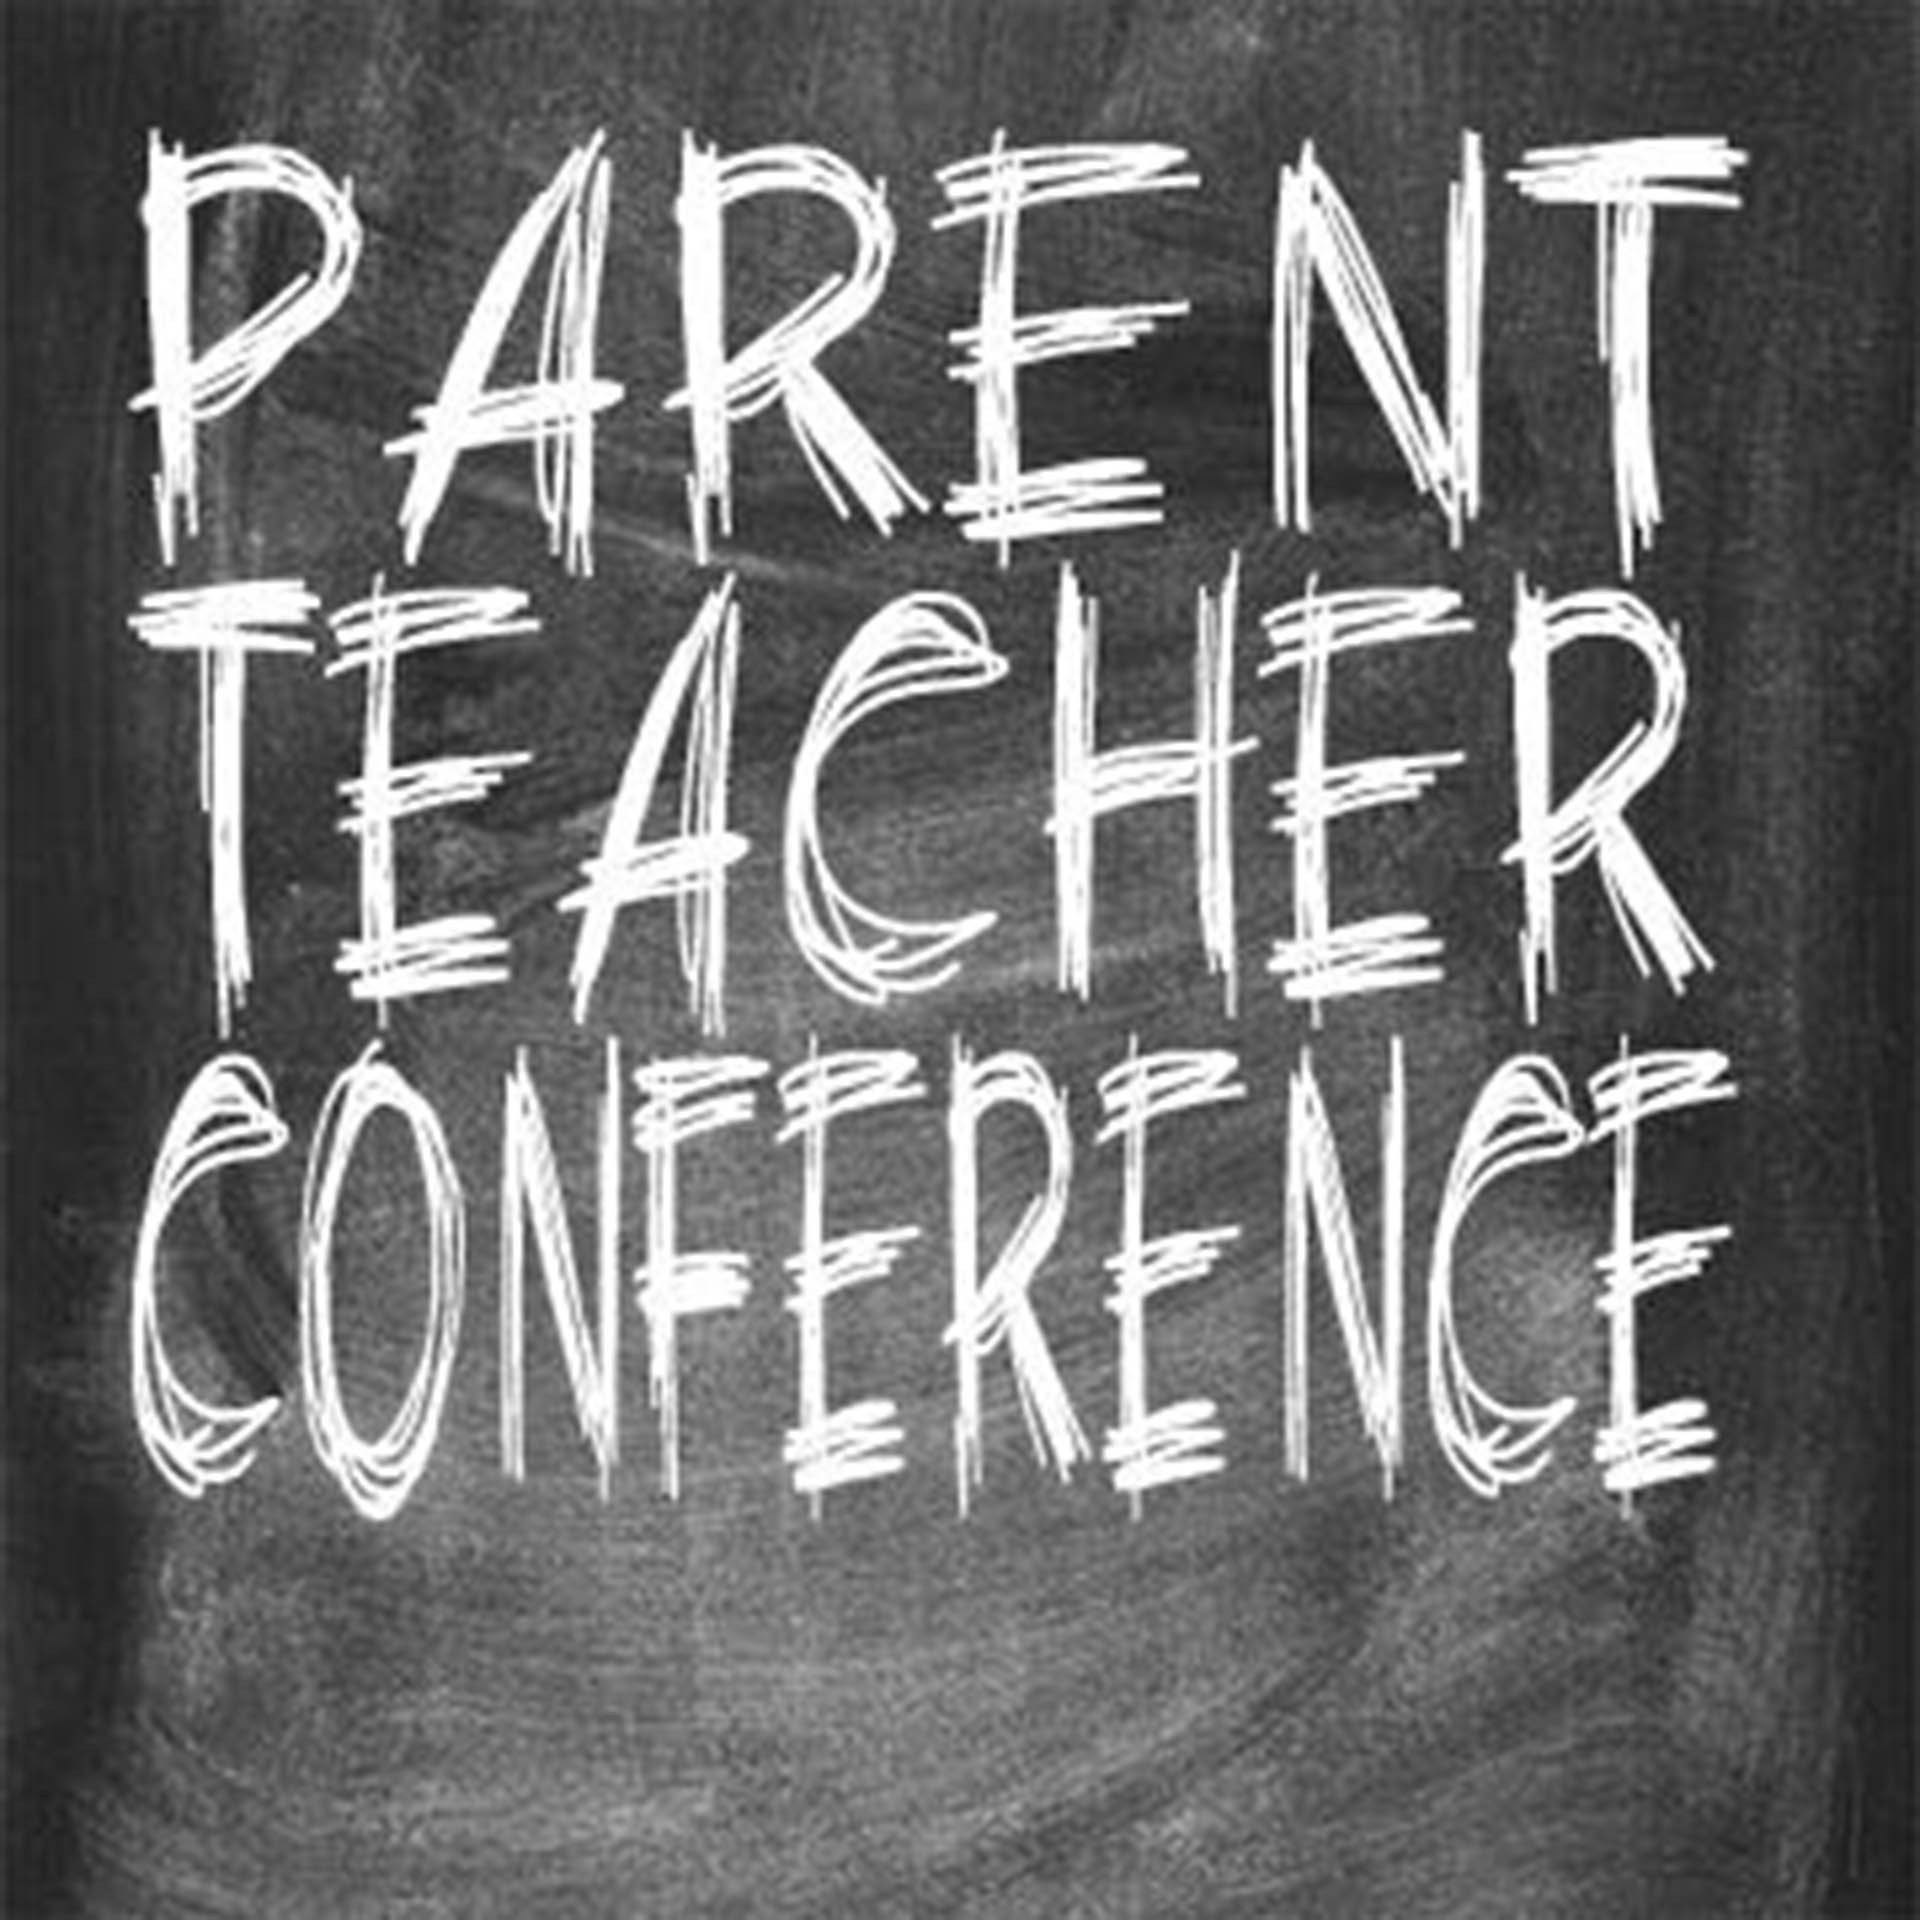 teacher and parent A parent-teacher conference, parent-teacher interview, parent-teacher night or parents' evening, is a short meeting or conference between the parents and teachers of students to discuss a child's progress at school and find solutions to academic or behavioral problems.